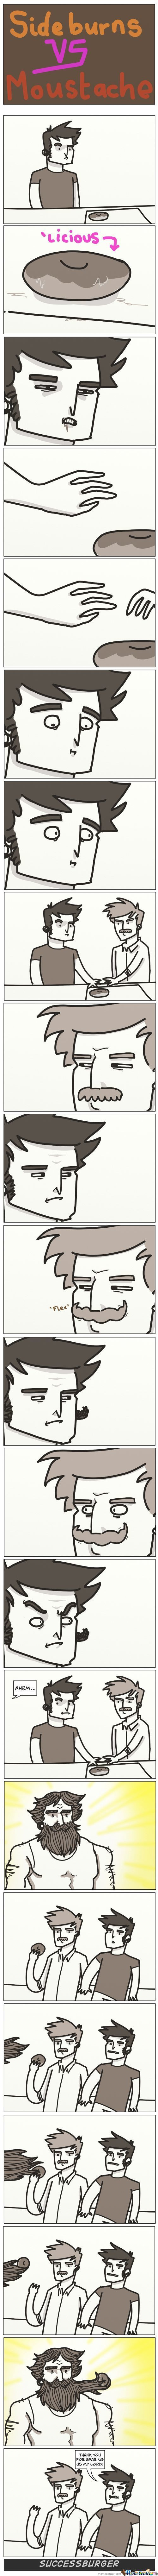 Sideburns Vs. Moustache